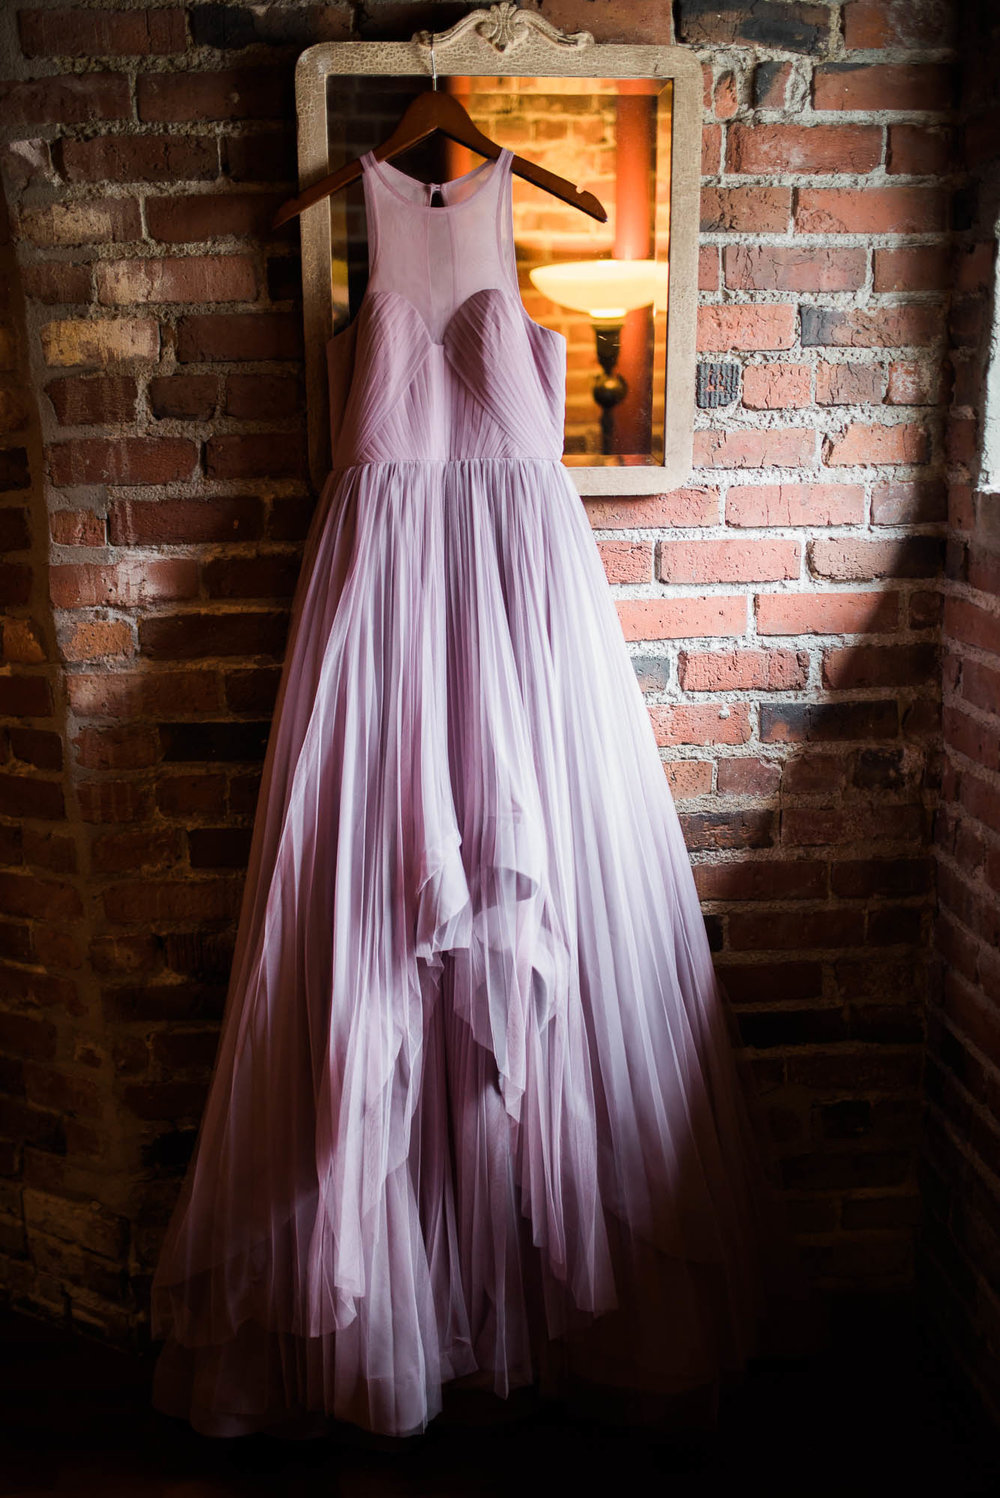 Georgetown Ballroom Wedding with board games, pop culture details and a purple wedding dress